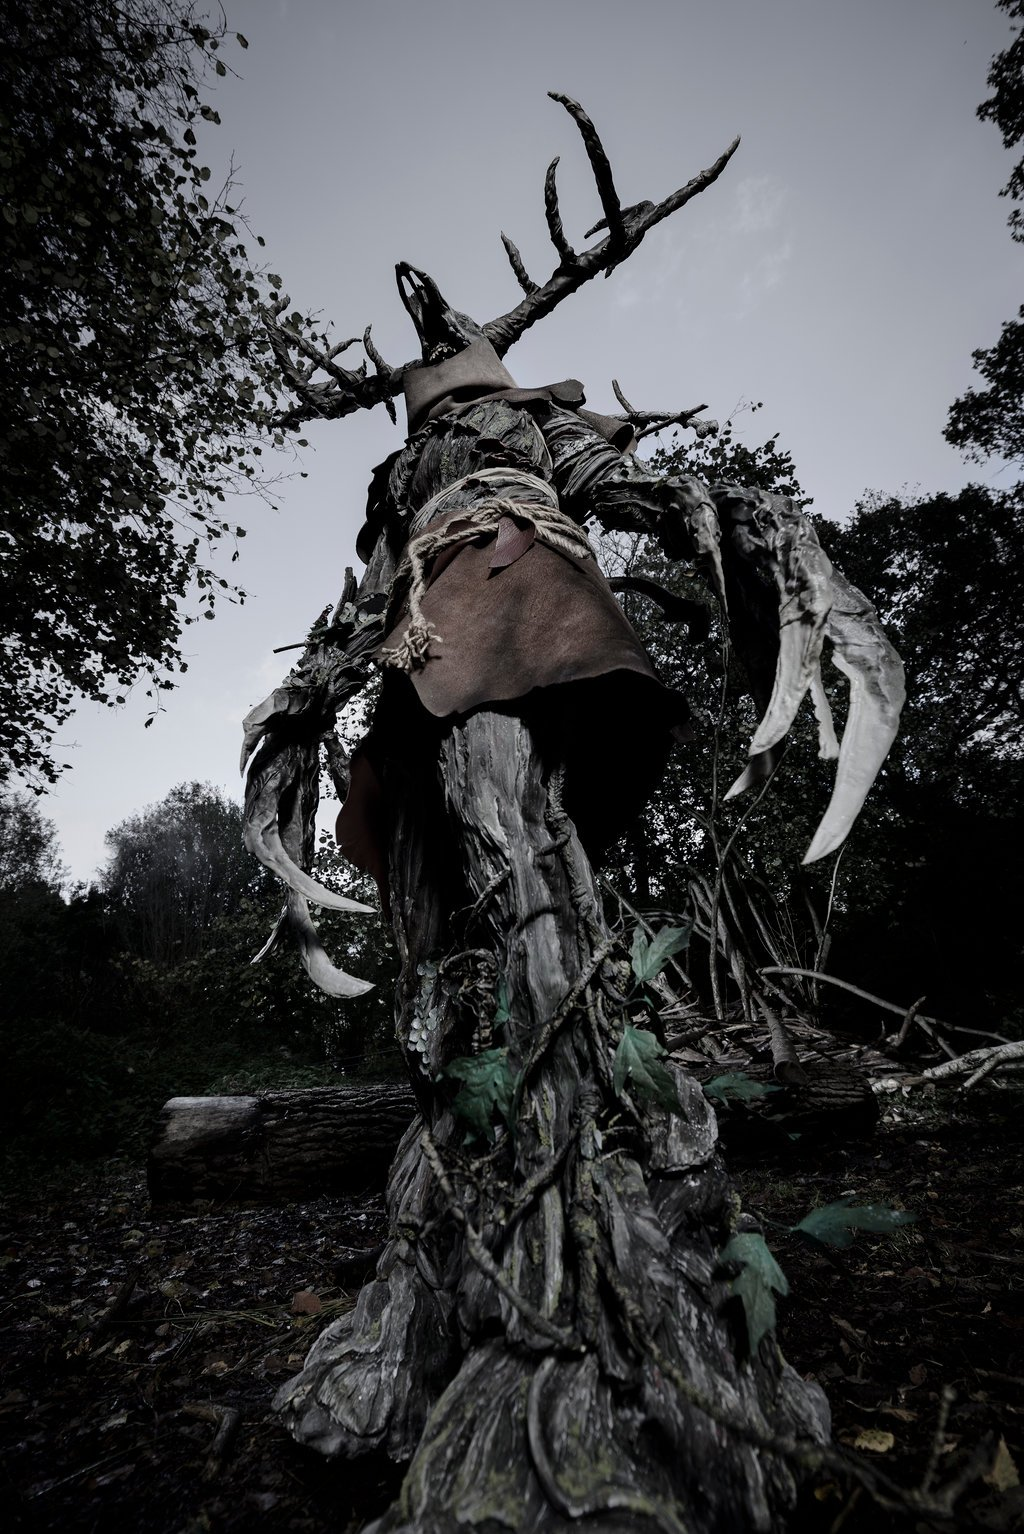 Wild Forest 3d Wallpaper Creepy Leshen Costume From The Witcher 3 171 Adafruit